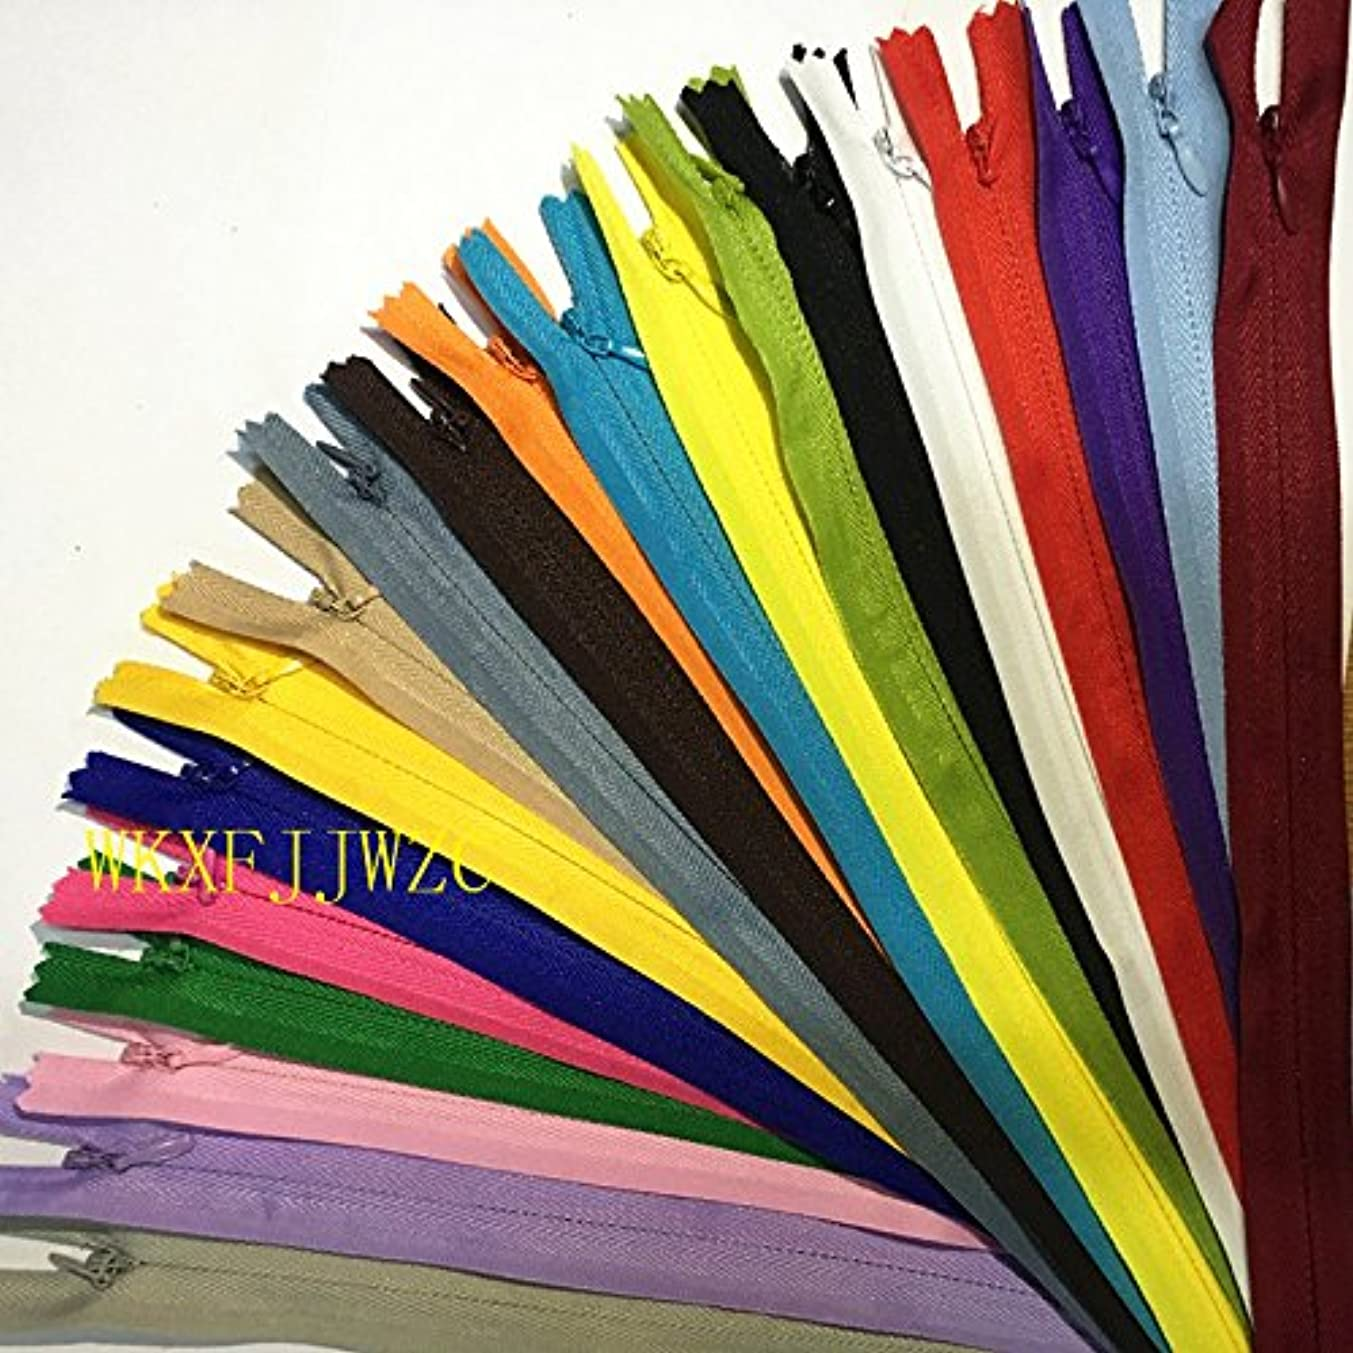 WKXFJJWZC 60pcs Nylon 3# Invisible Zippers Tailor Sewing Tools Garment Accessories 12 Inch (30CM)Closed End Invisible Zippers 20 Color (MIX)